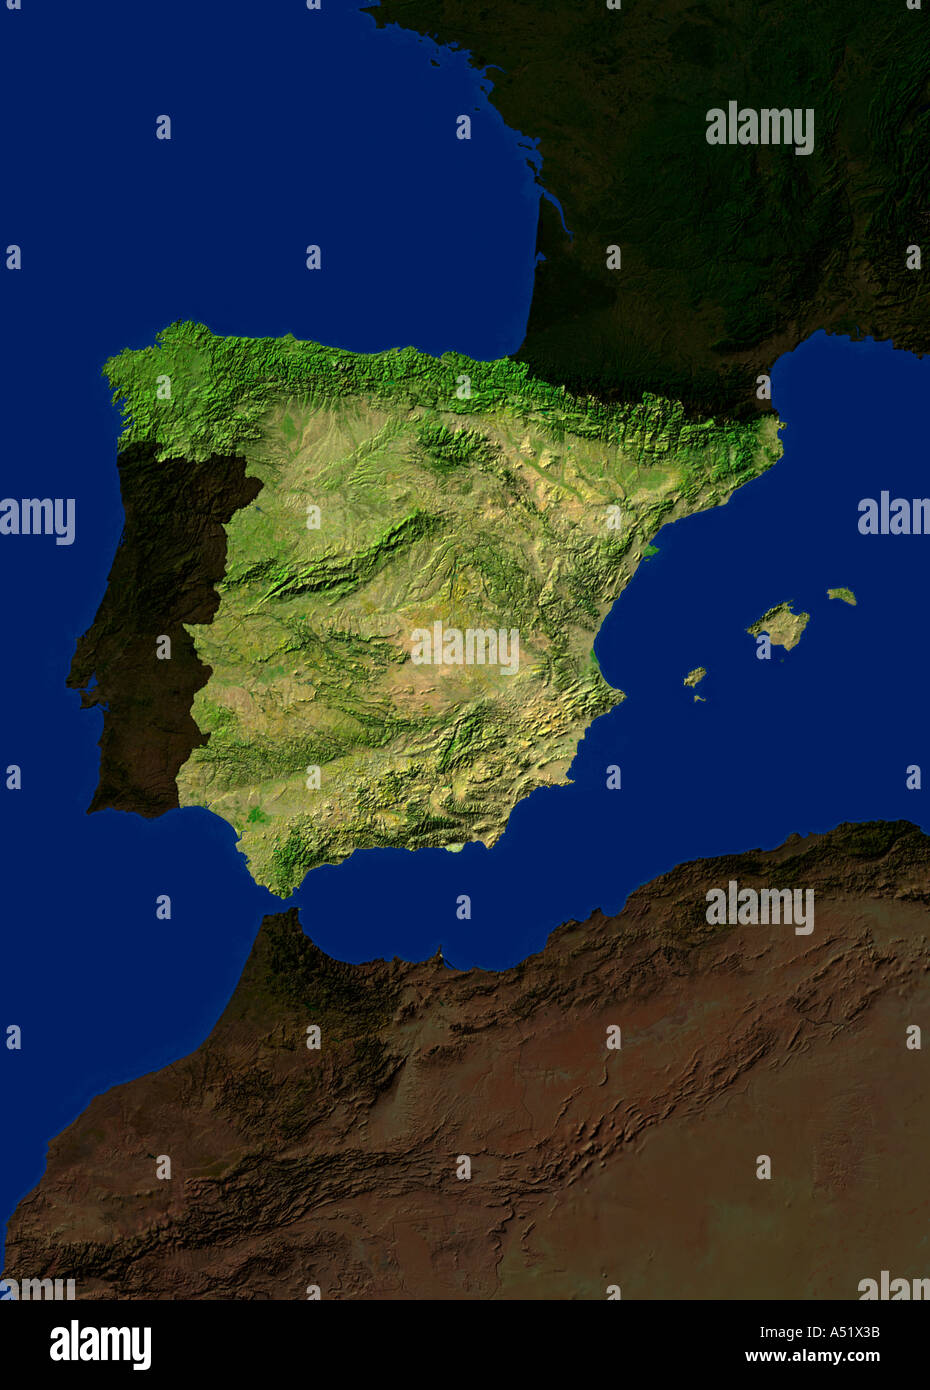 Satellite Map Of Spain.Spain Map Stock Photos Spain Map Stock Images Alamy